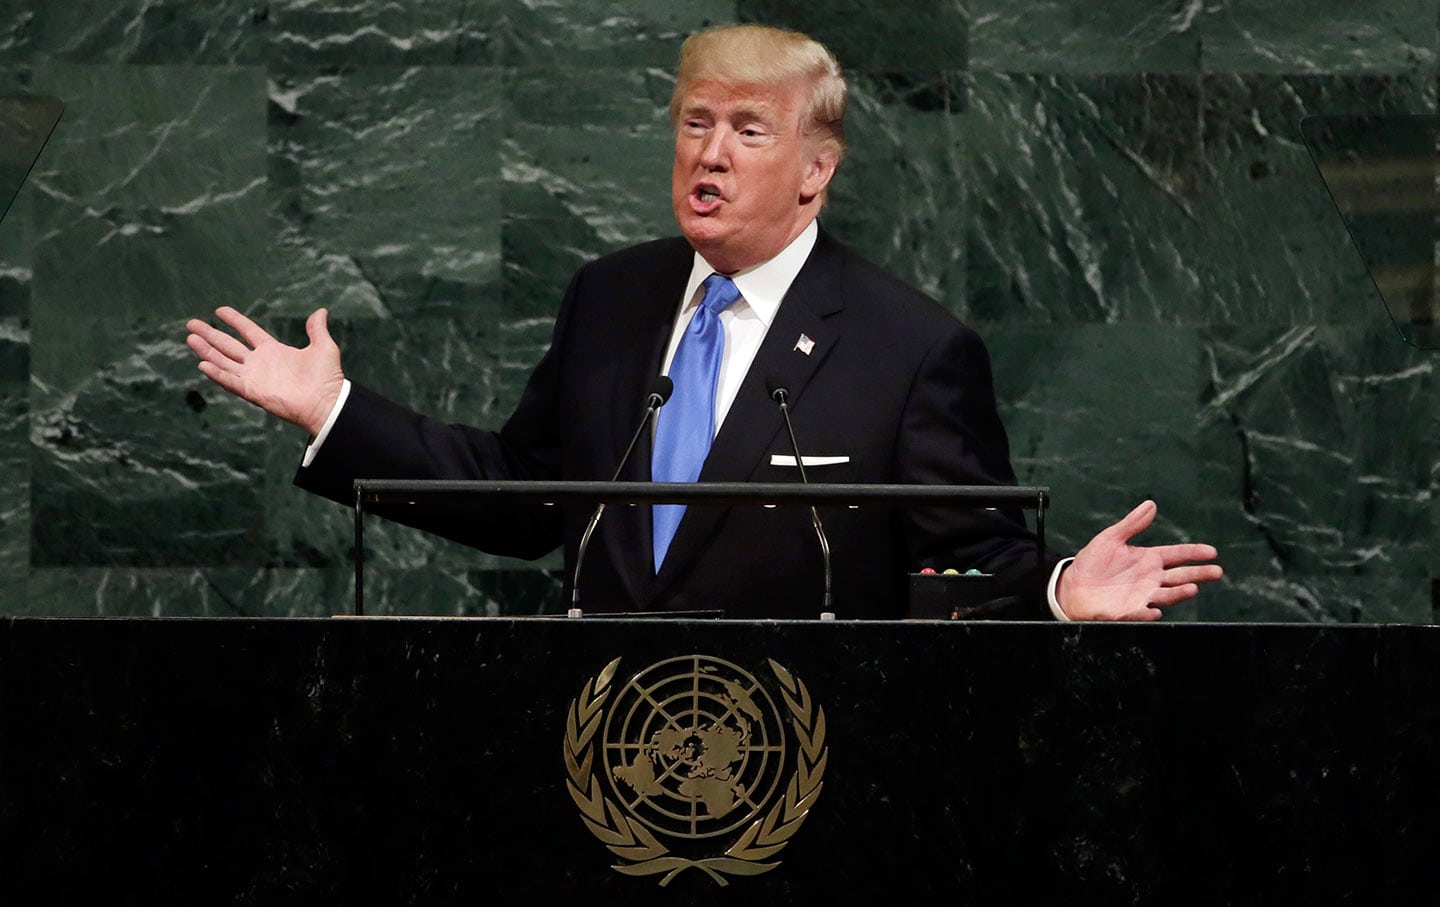 President Trump speaks at UN about Iranian Regime